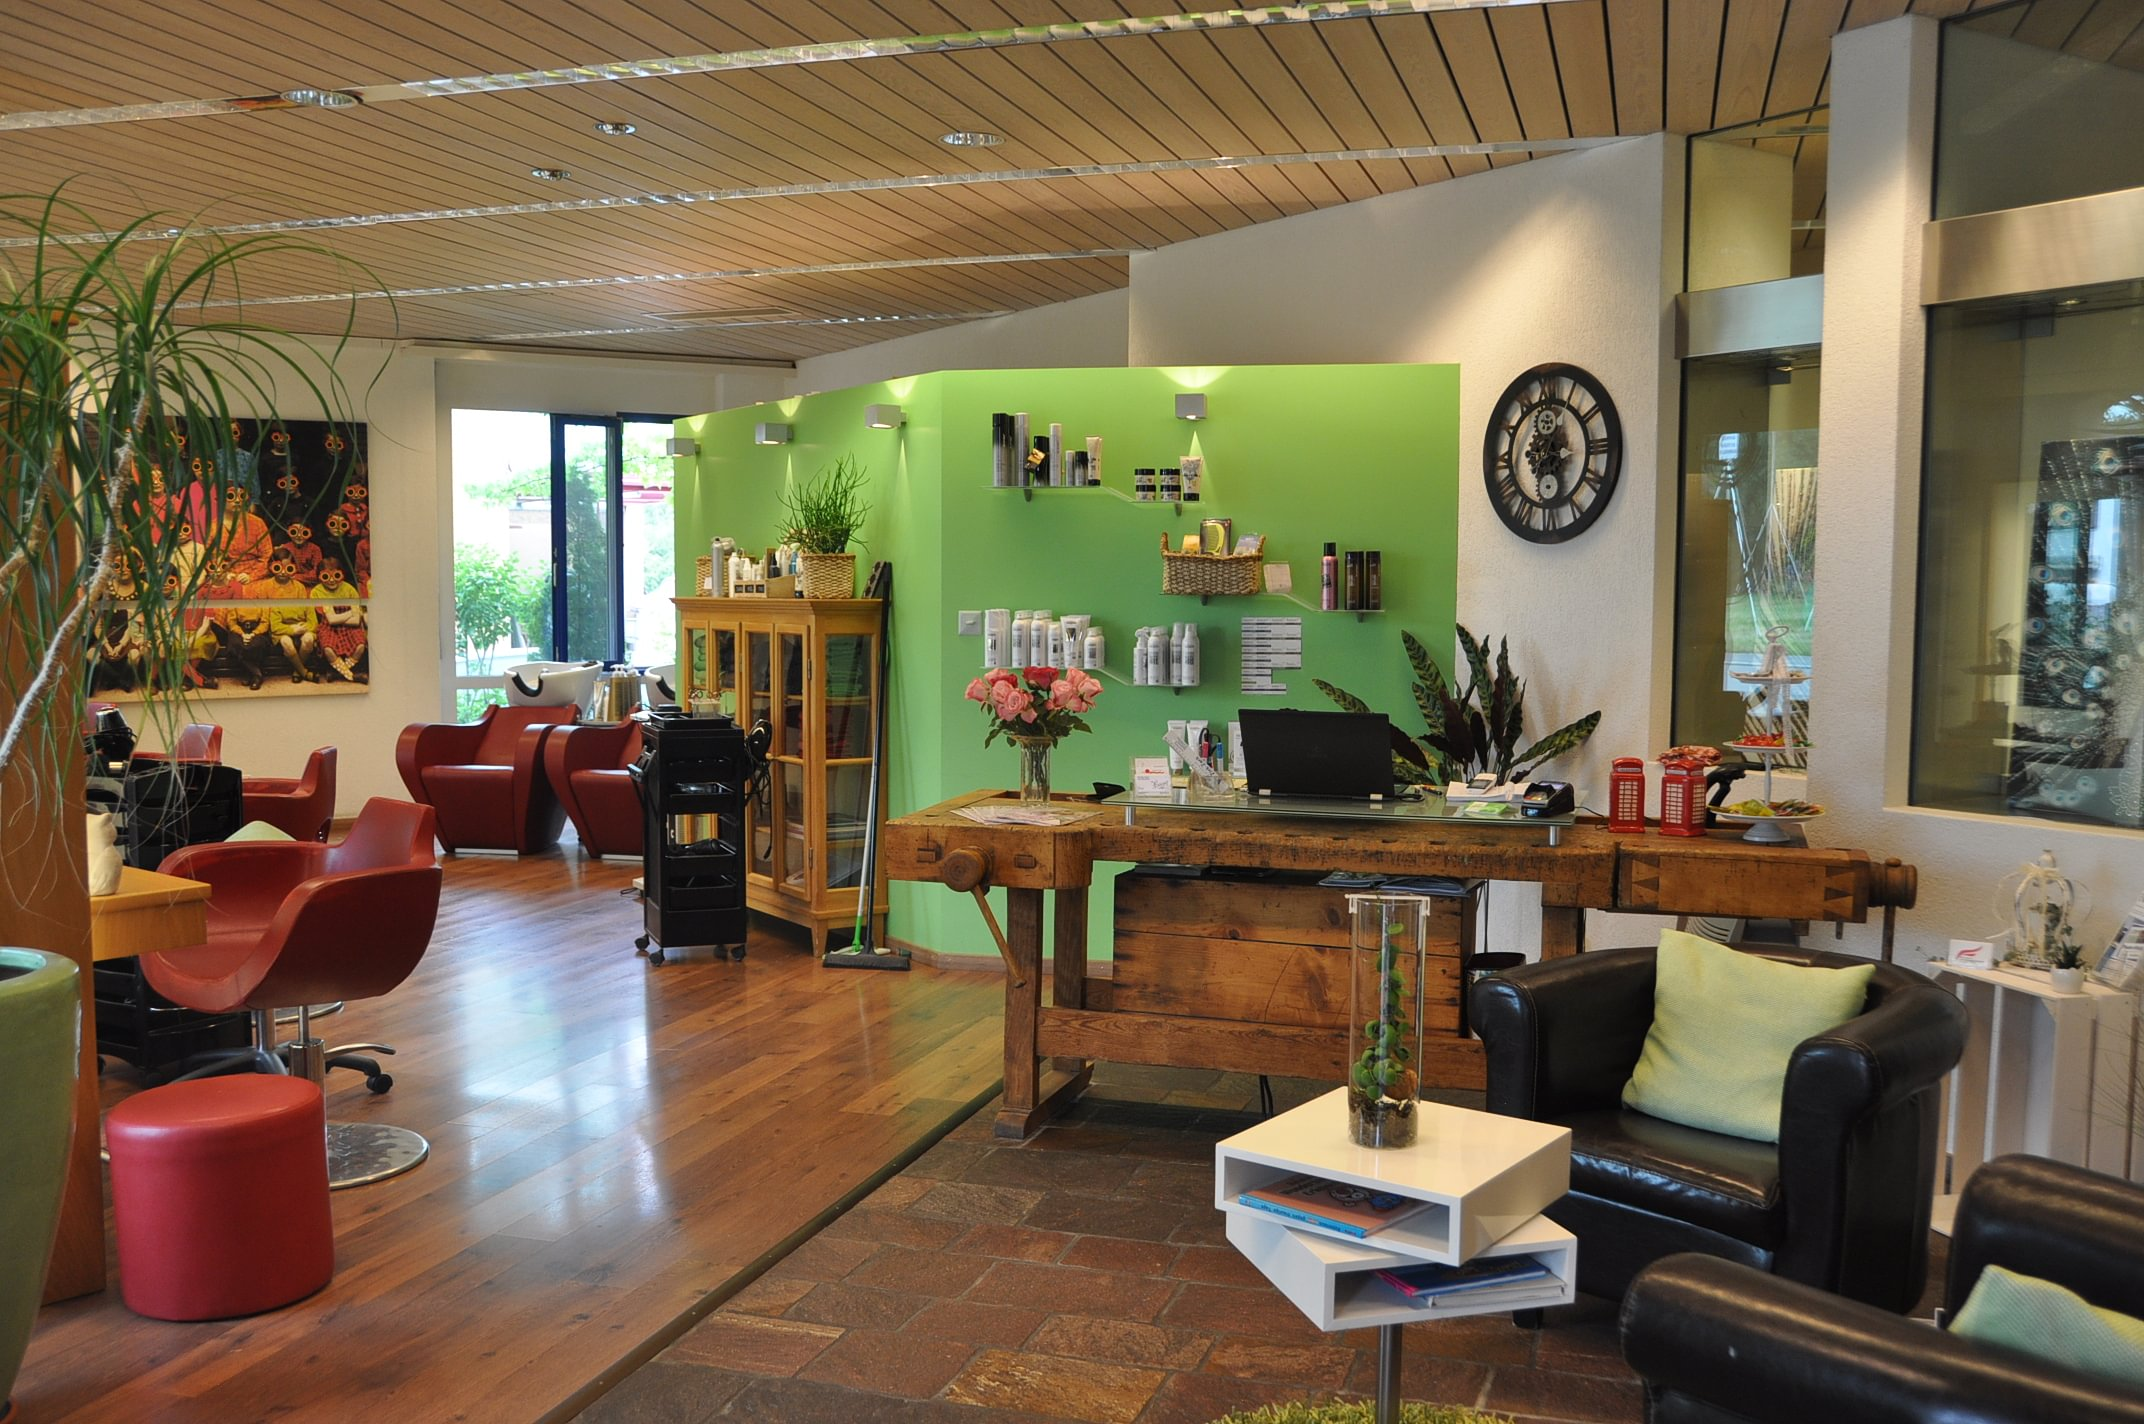 Coiffeur Zick - Zack in Seuzach - View address & opening hours on ...